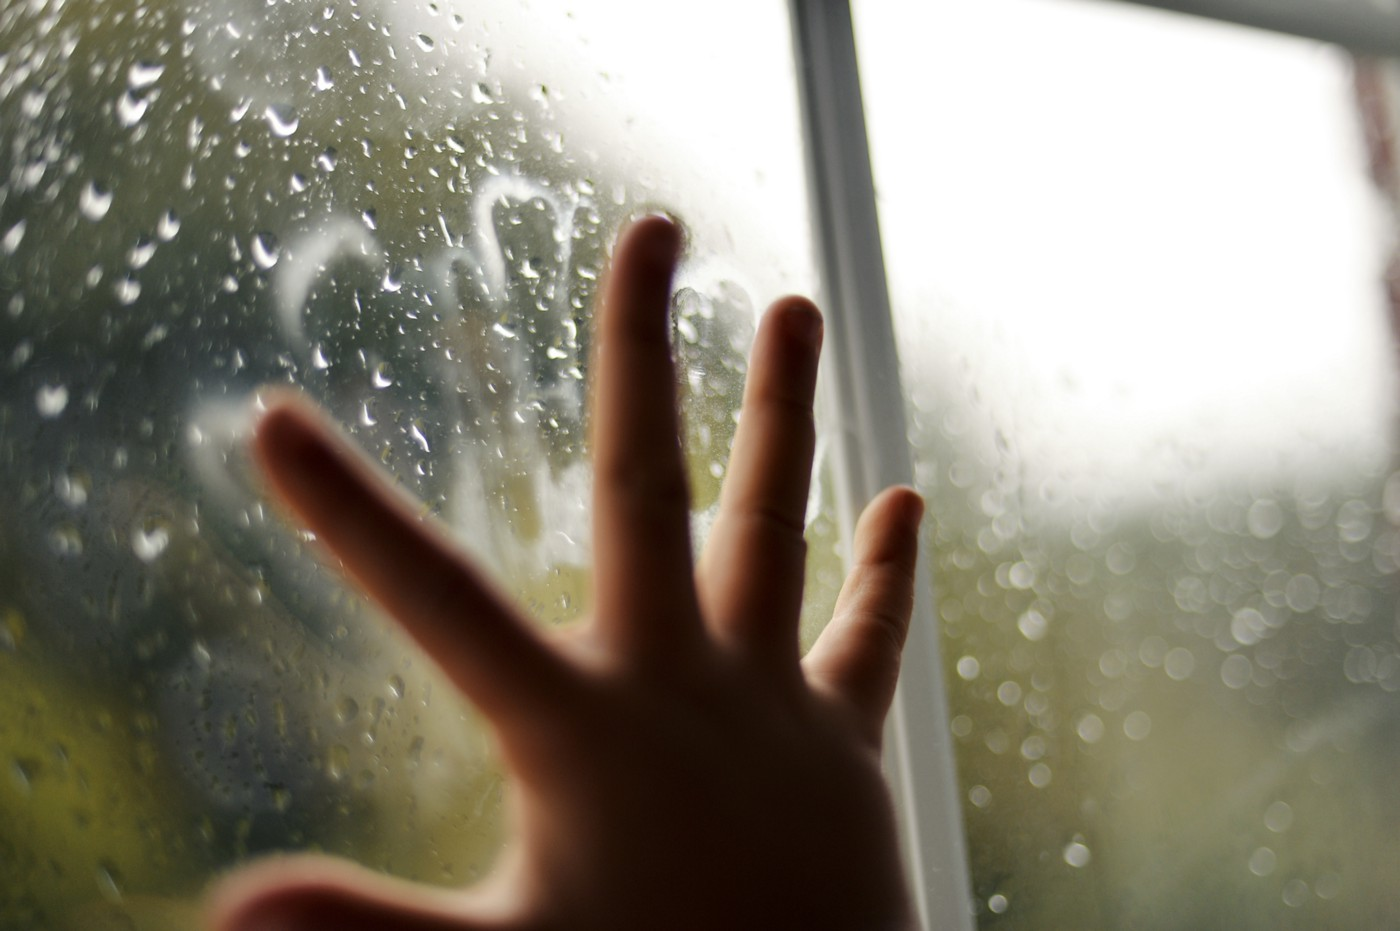 Childs hand pressed against window in home quarantine lockdown with rain drops and green leaves outside.